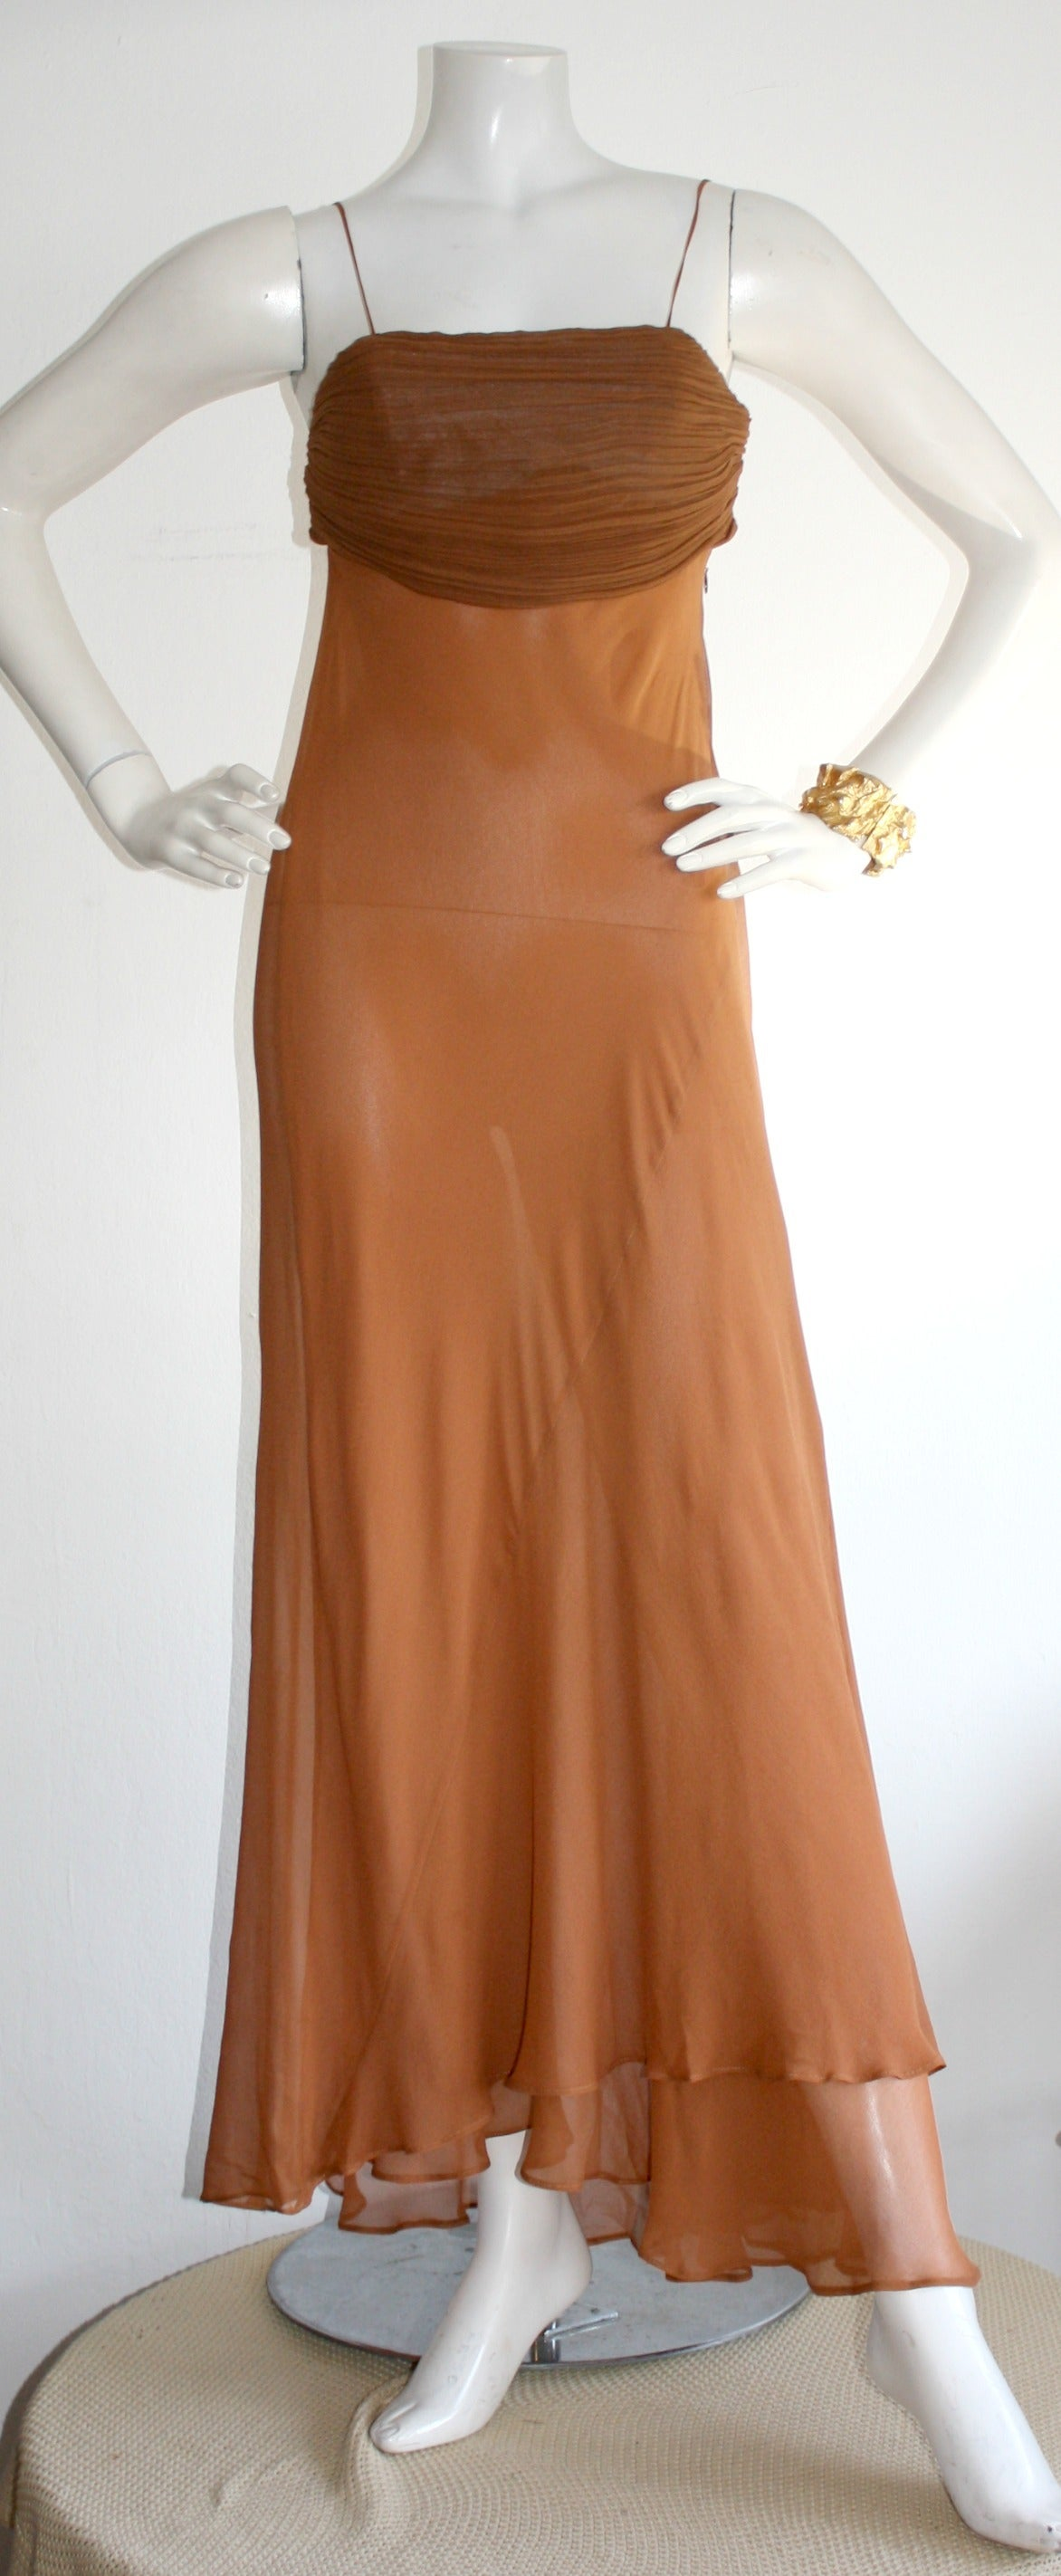 Brown Exquisite Vintage Alberta Ferretti Grecian Goddess Chiffon Gown And Jacket For Sale